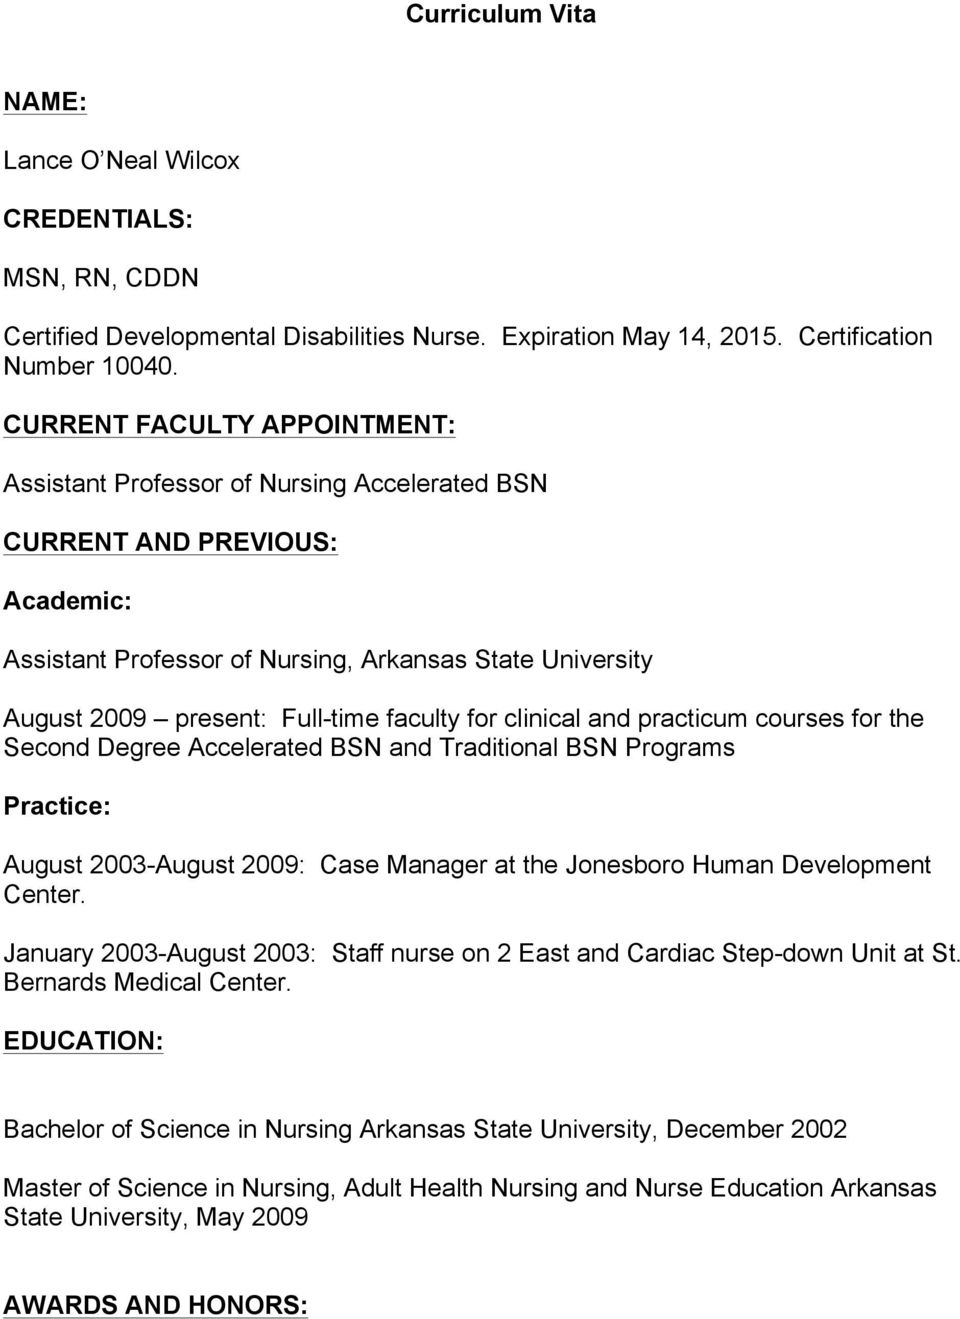 faculty for clinical and practicum courses for the Second Degree Accelerated BSN and Traditional BSN Programs Practice: August 2003-August 2009: Case Manager at the Jonesboro Human Development Center.